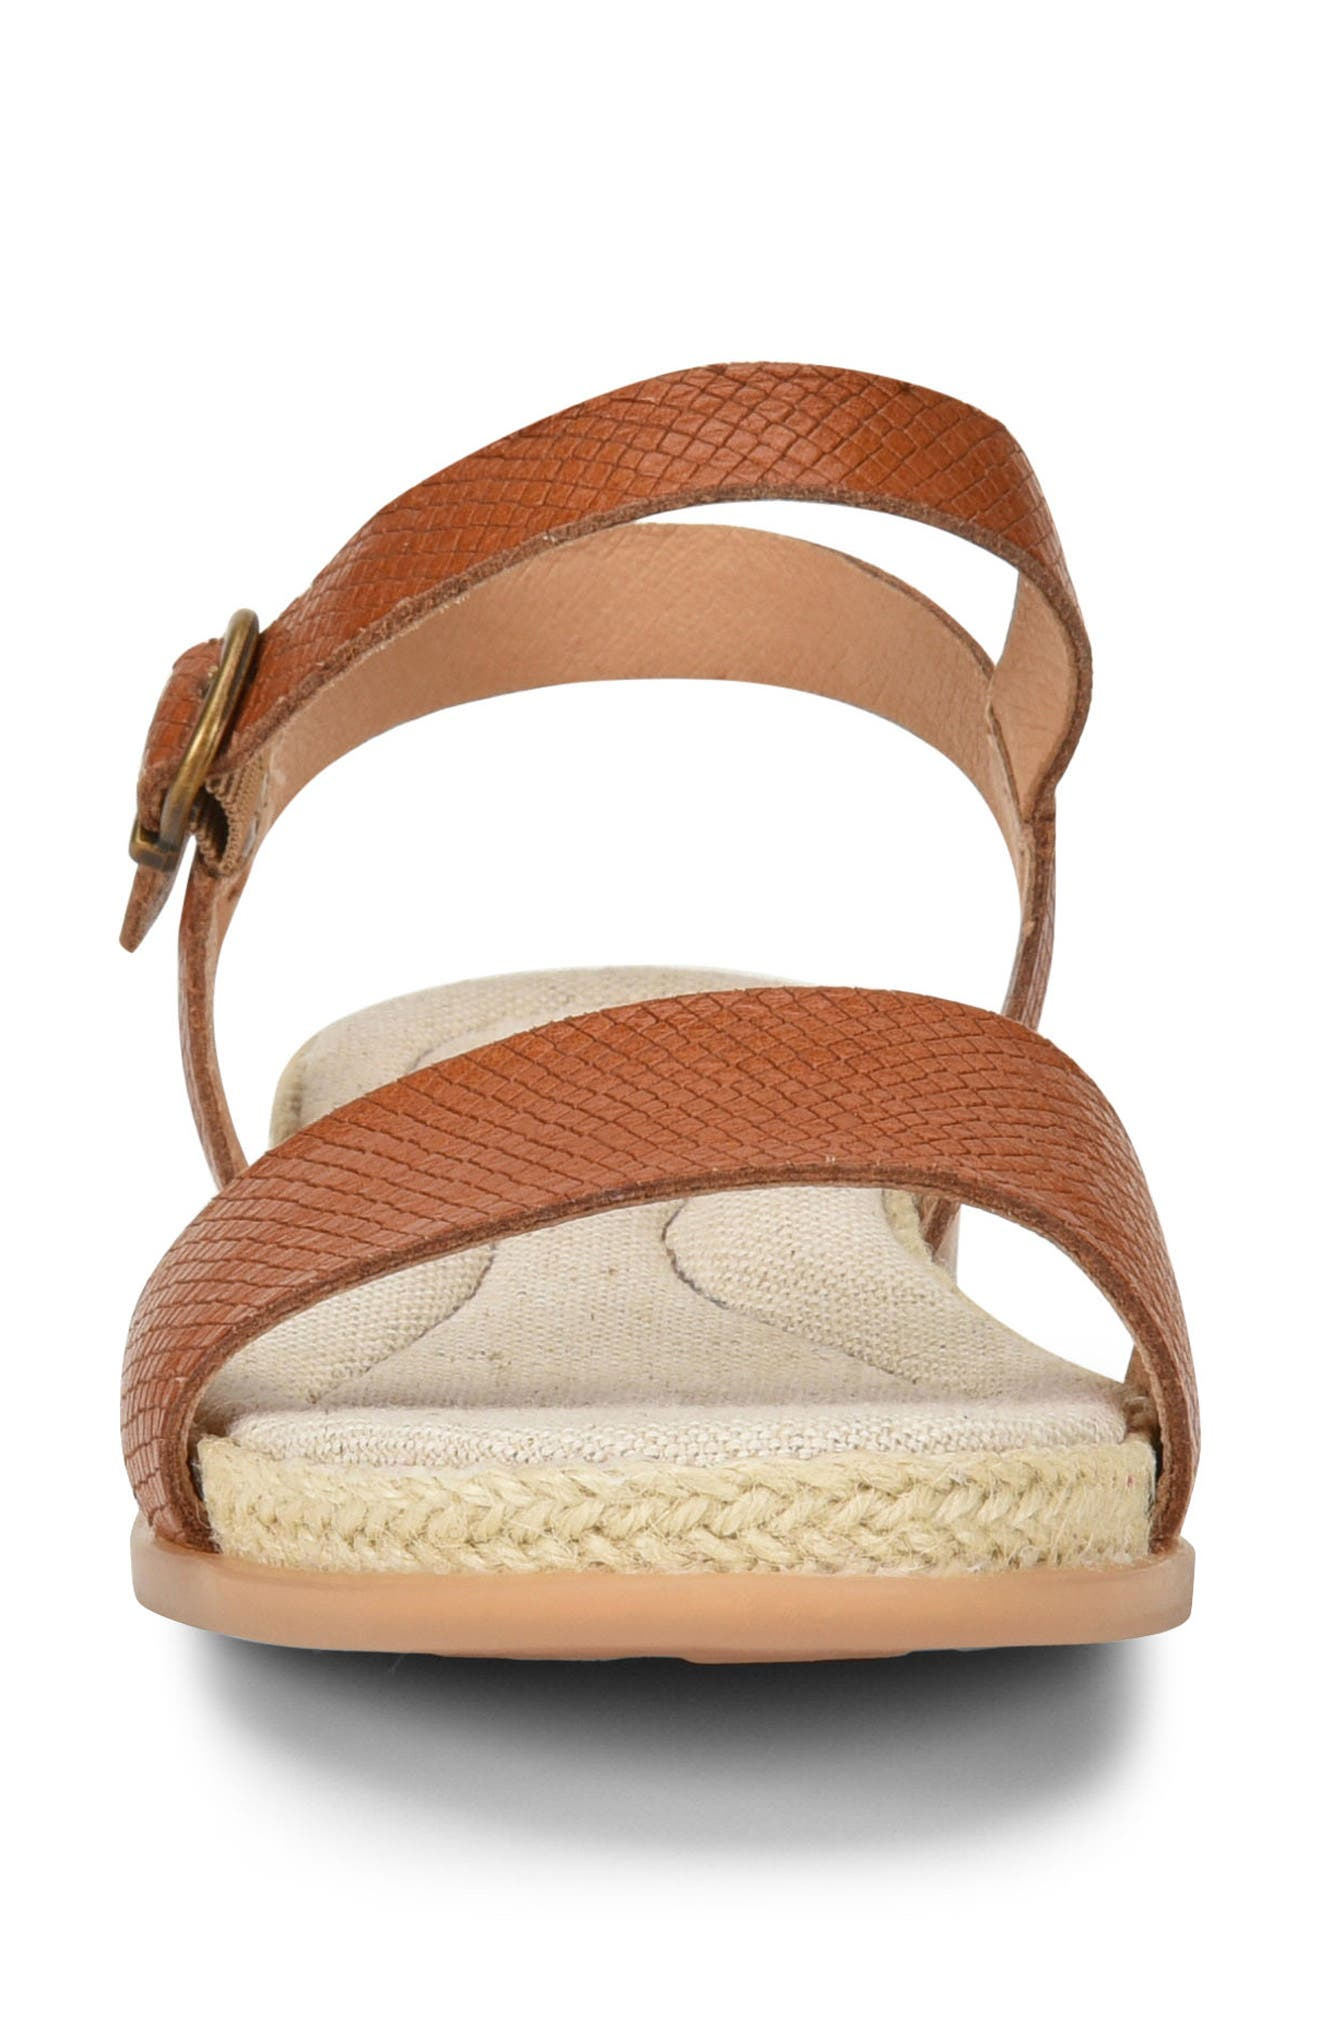 Welch Sandal,                             Alternate thumbnail 4, color,                             Brown Leather